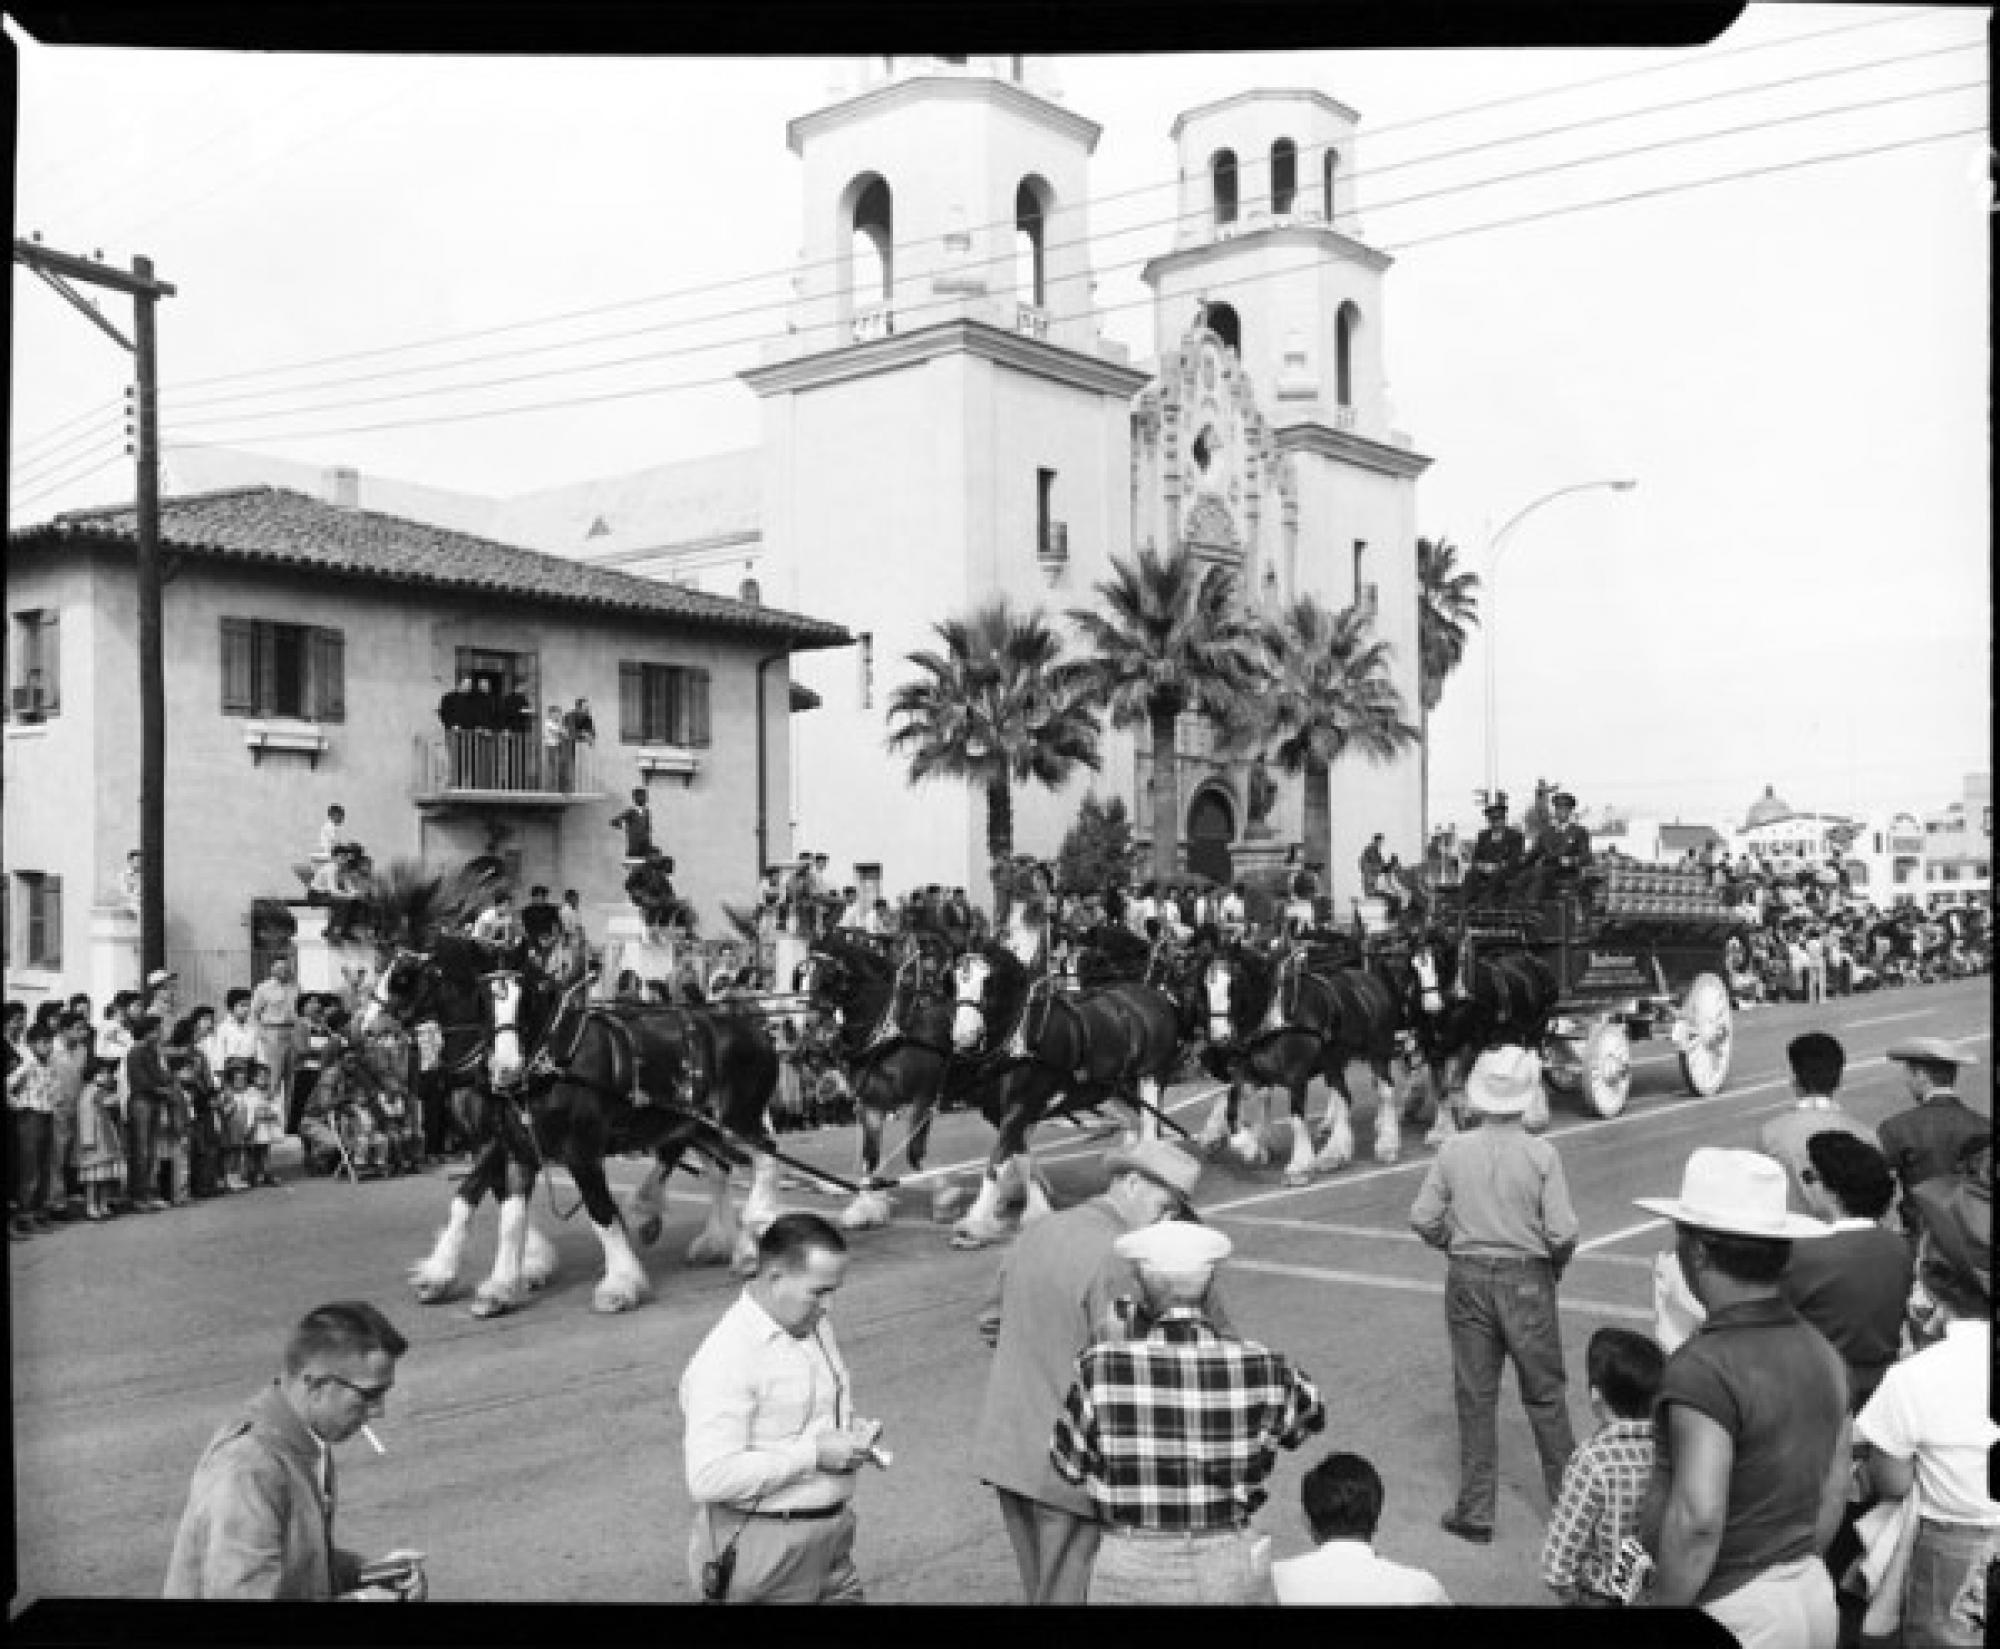 Jack Sheaffer photographed the rodeo and rodeo parades in Tucson during the 1950s and 1960s.